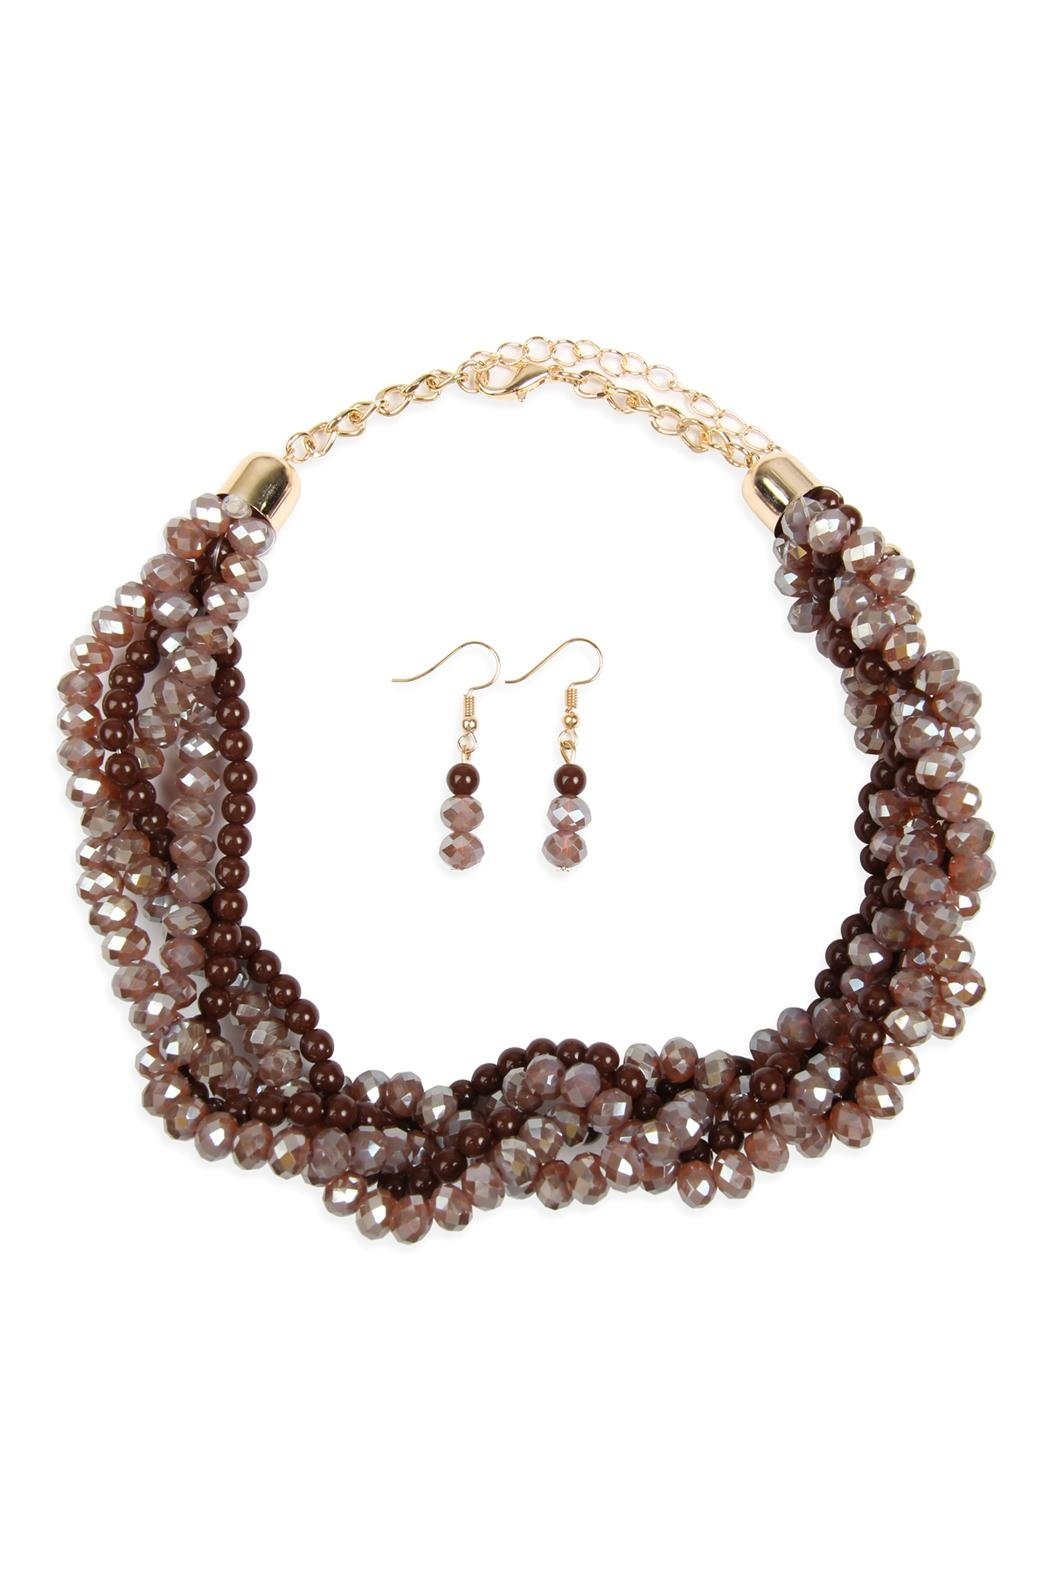 Riah Fashion 4-Lines Braided-Glass-Beads Necklace-And-Earring-Set - Front Cropped Image